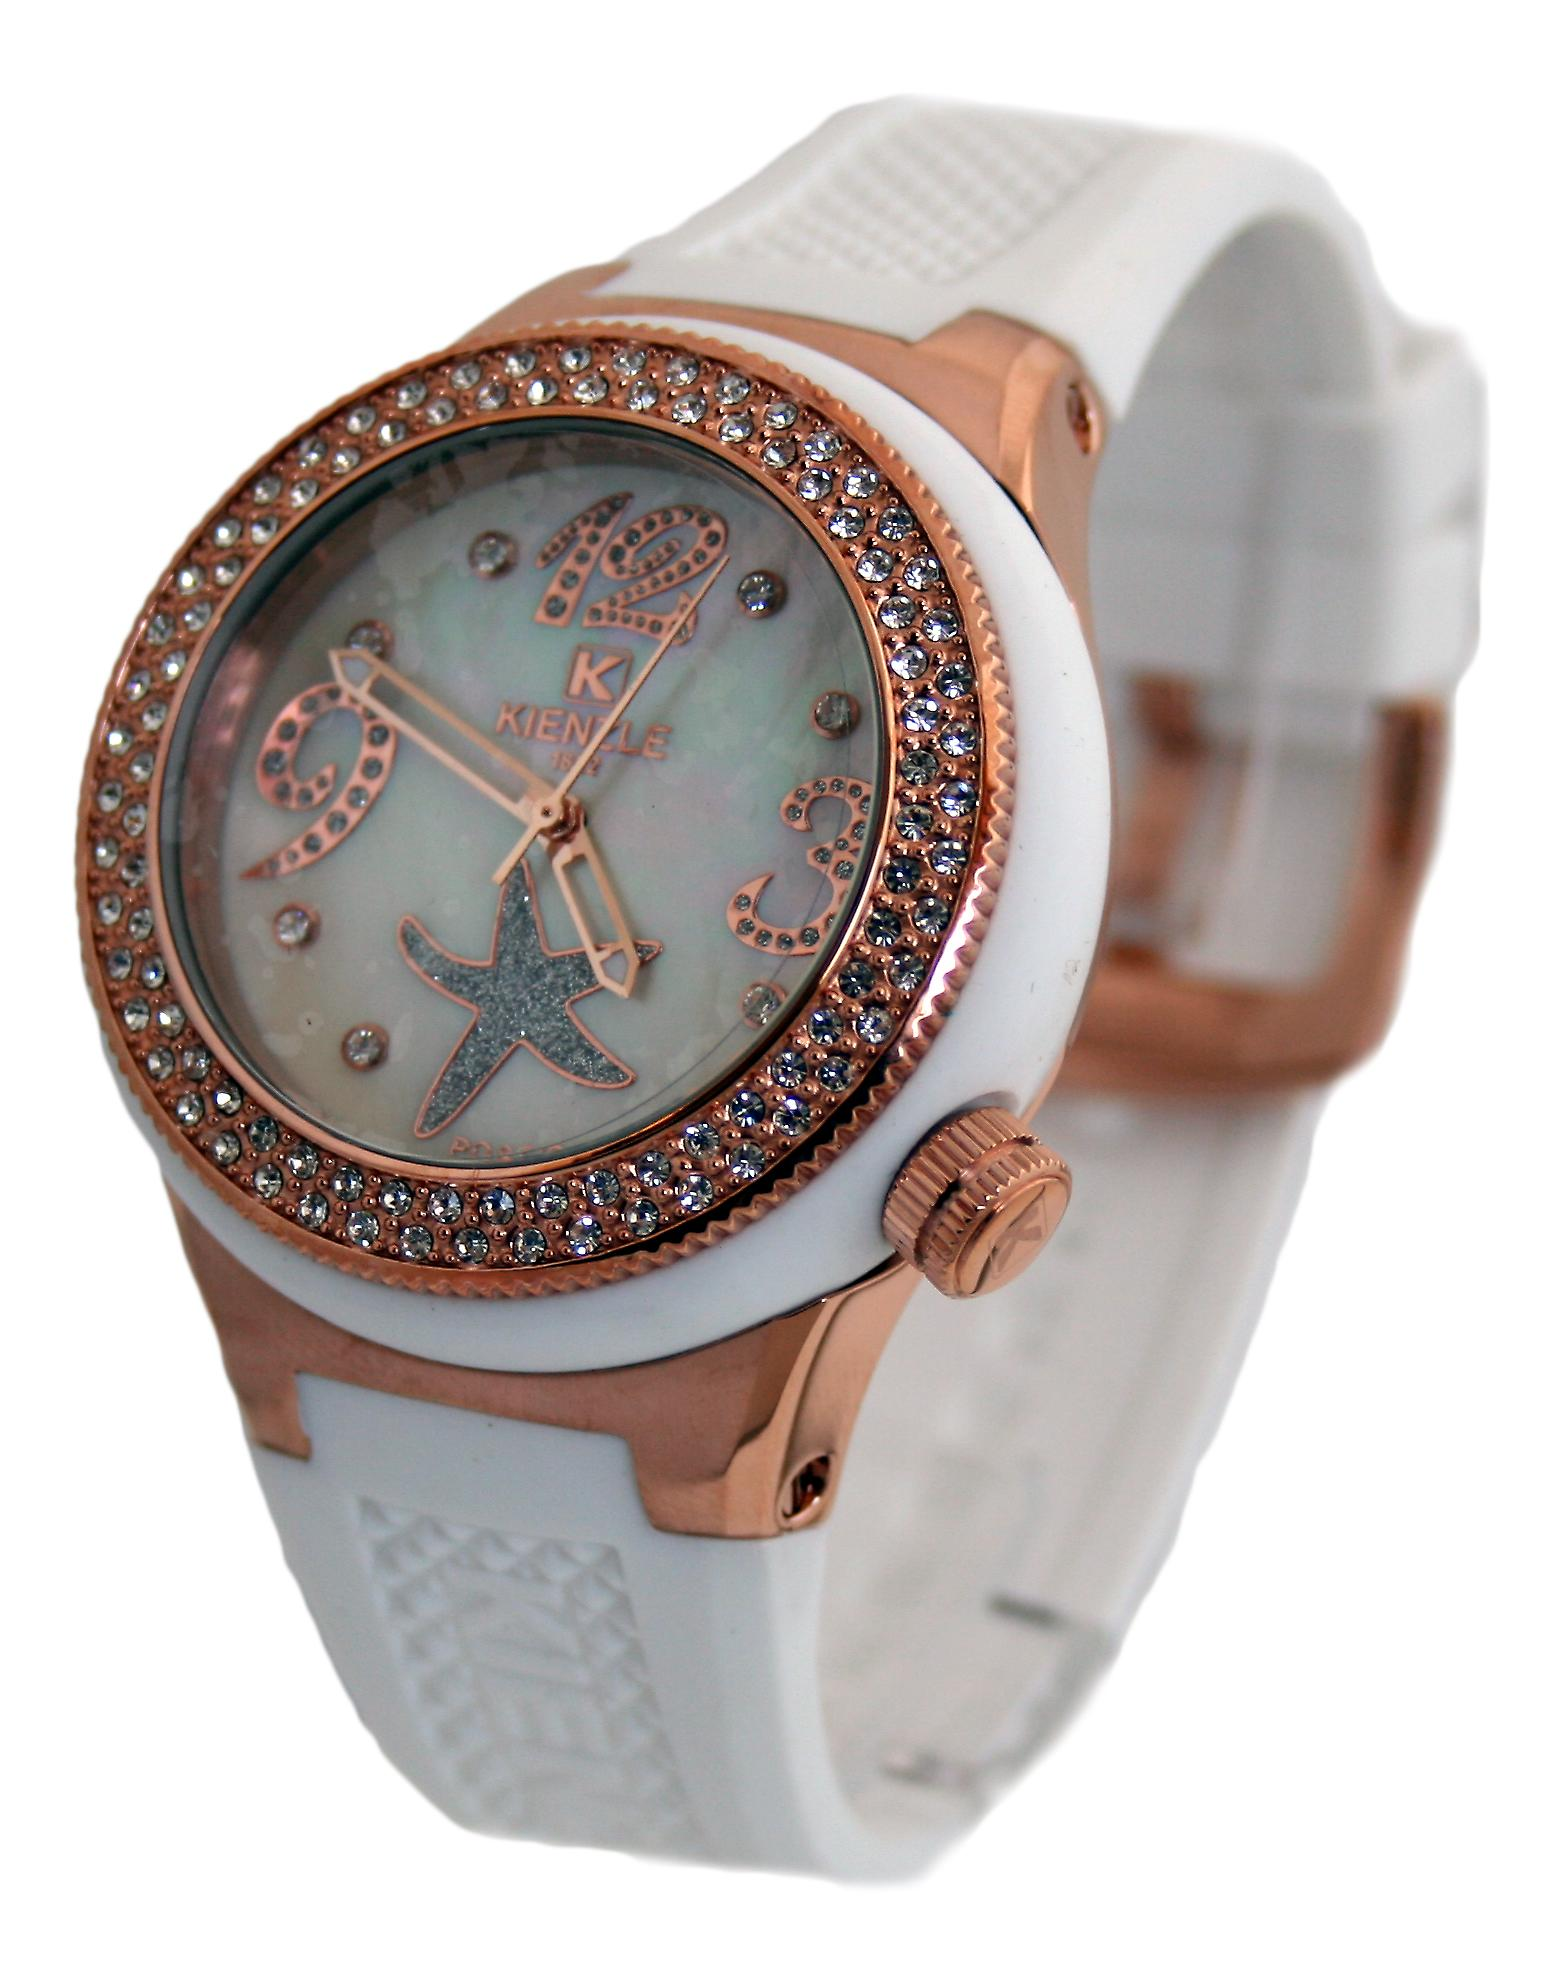 Waooh - Watch Kienzle 720 3061 for Women - White Silicone Bracelet - White Dial - Box color and white metal copper - copper bezel with rhinestones